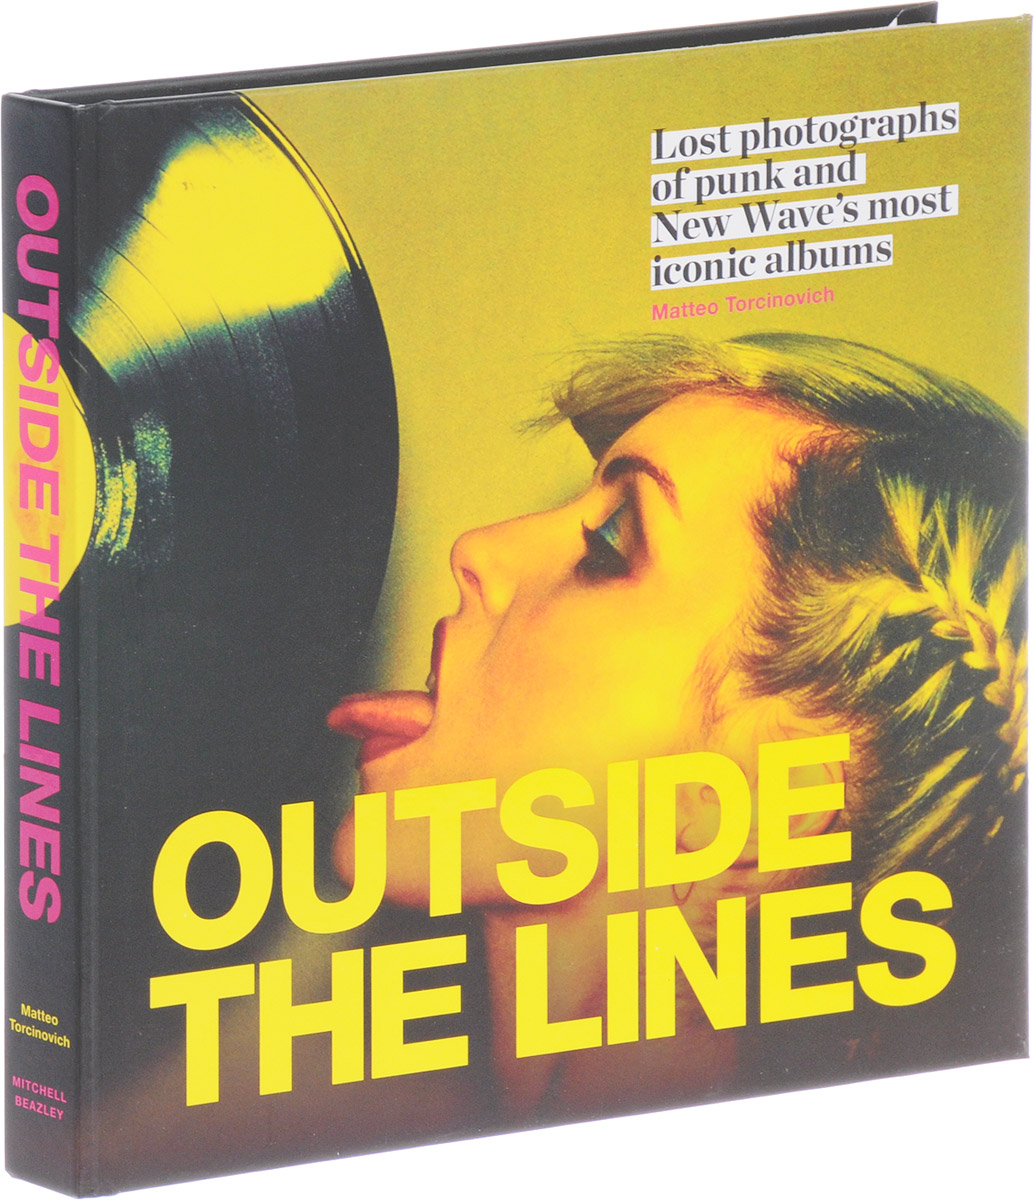 Outside the Lines: Lost photographs of punk and new wave's most iconic albums ravi maddaly madhumitha haridoss and sai keerthana wuppalapati aggregates of cell lines on agarose hydrogels